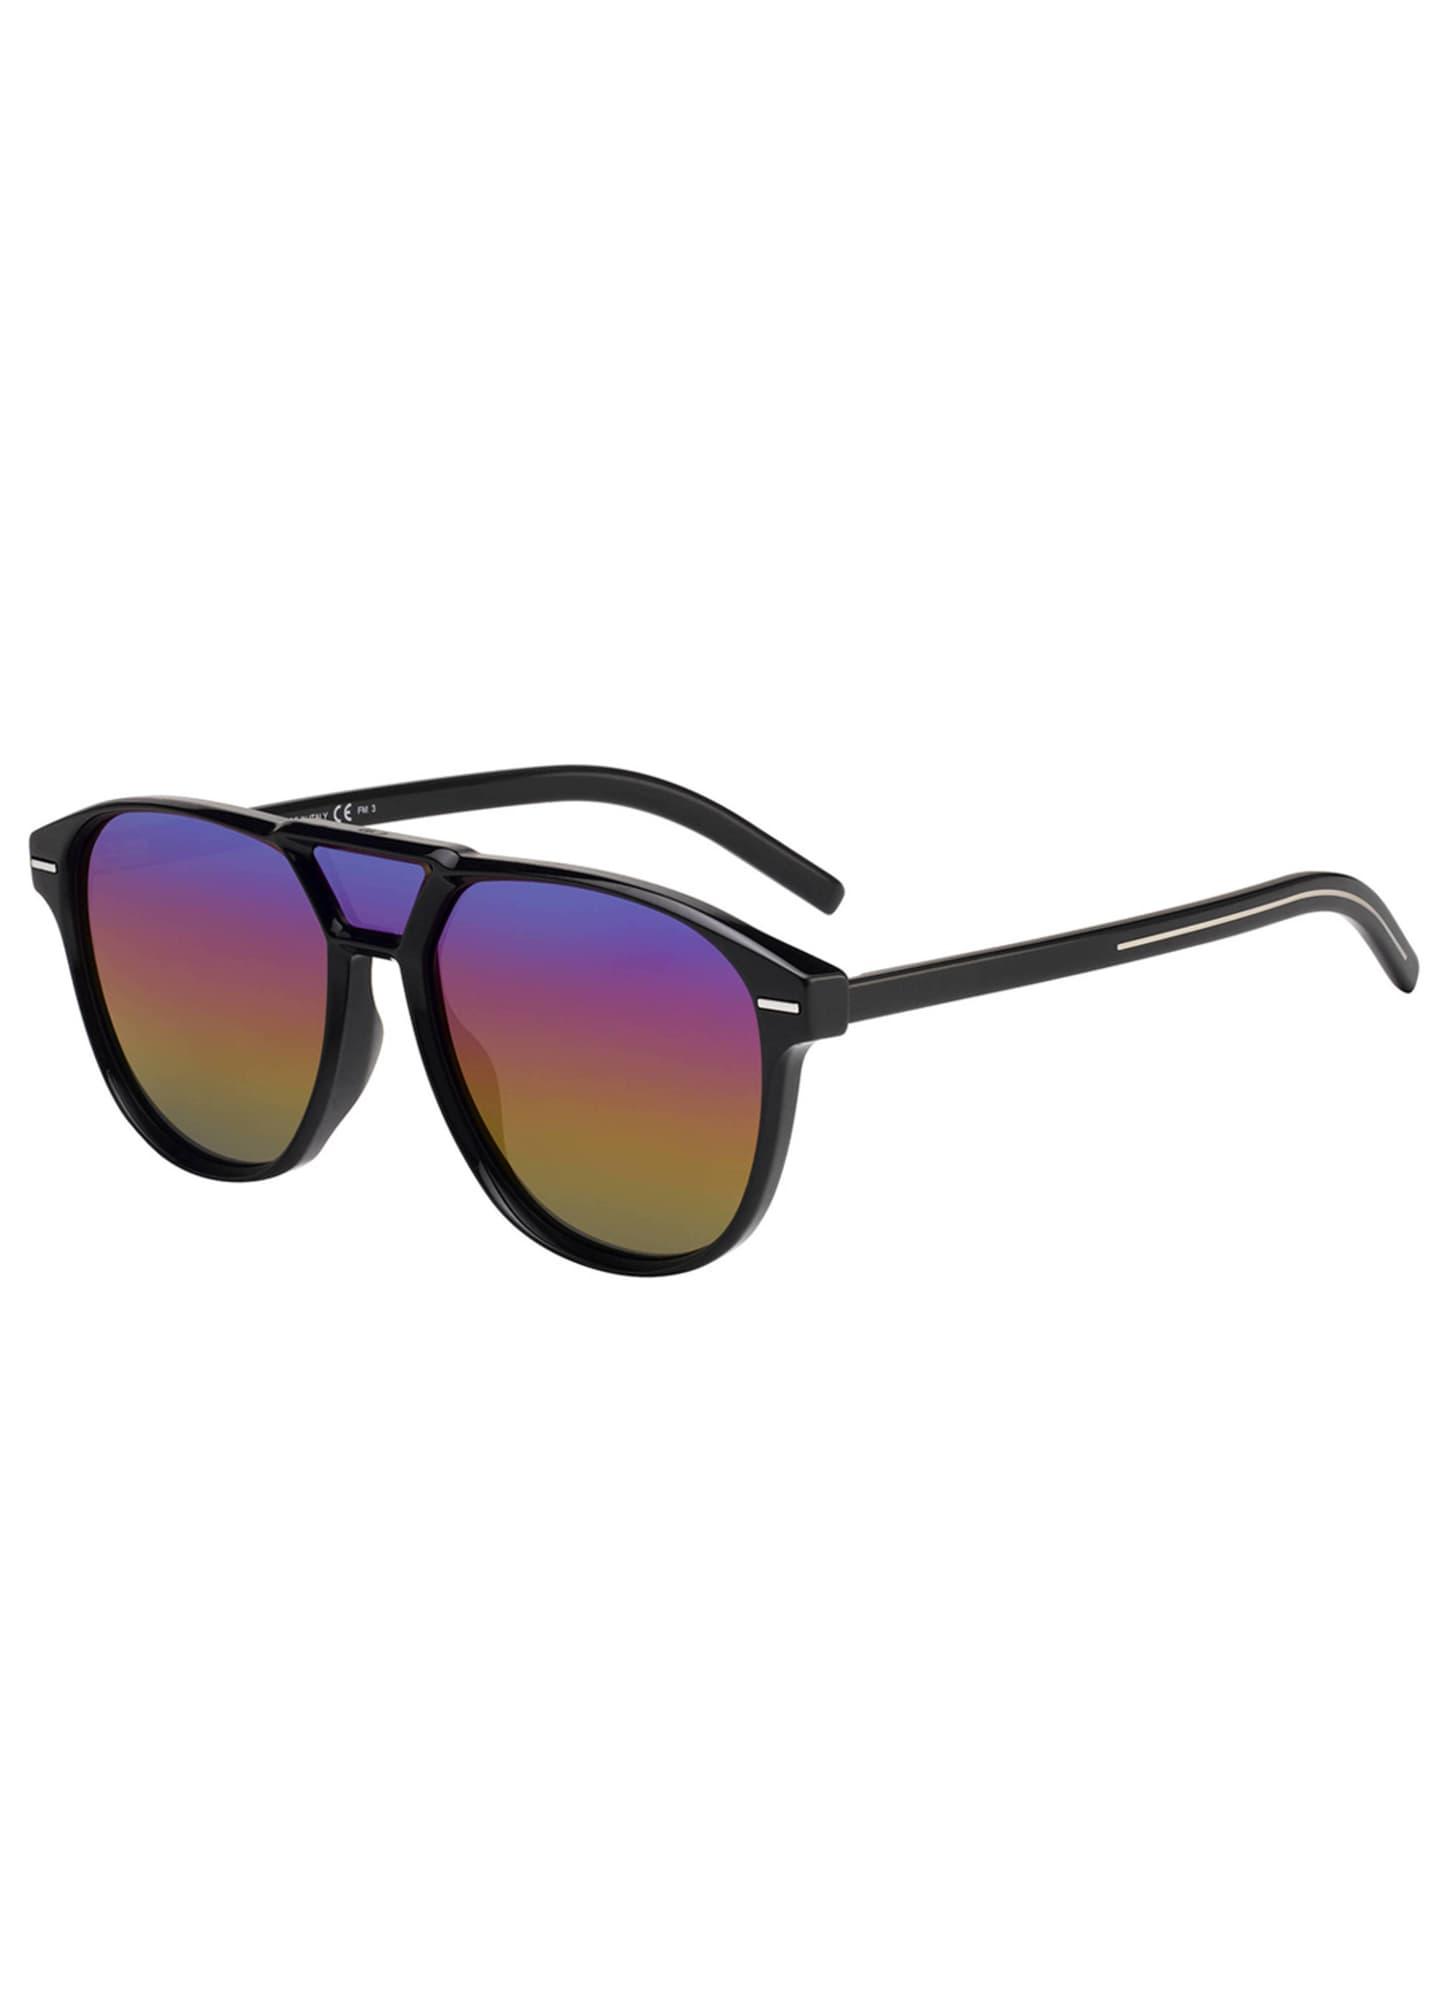 Image 1 of 1: Men's Square Extended-Lens Grilamid Sunglasses